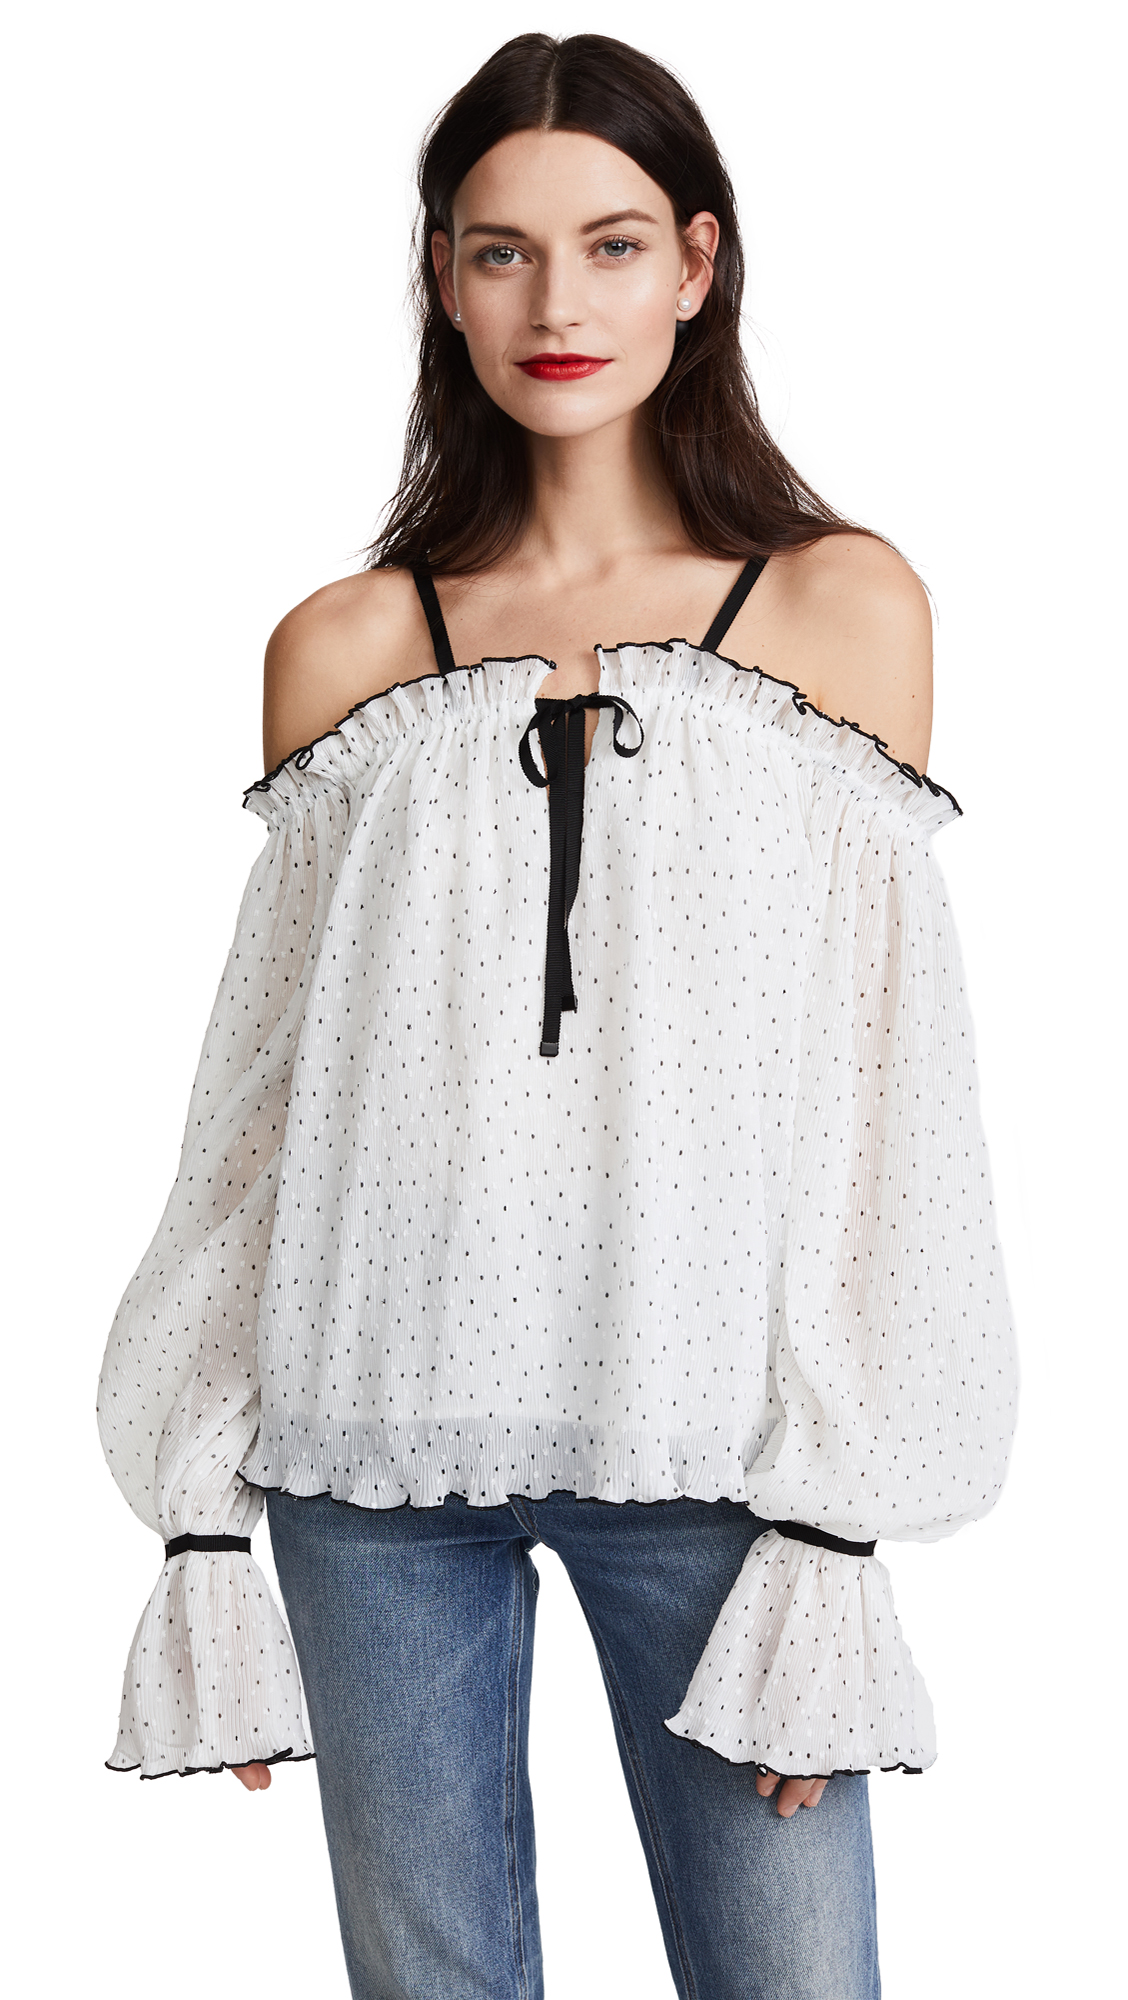 Alice McCall Picture This Blouse - Porcelain